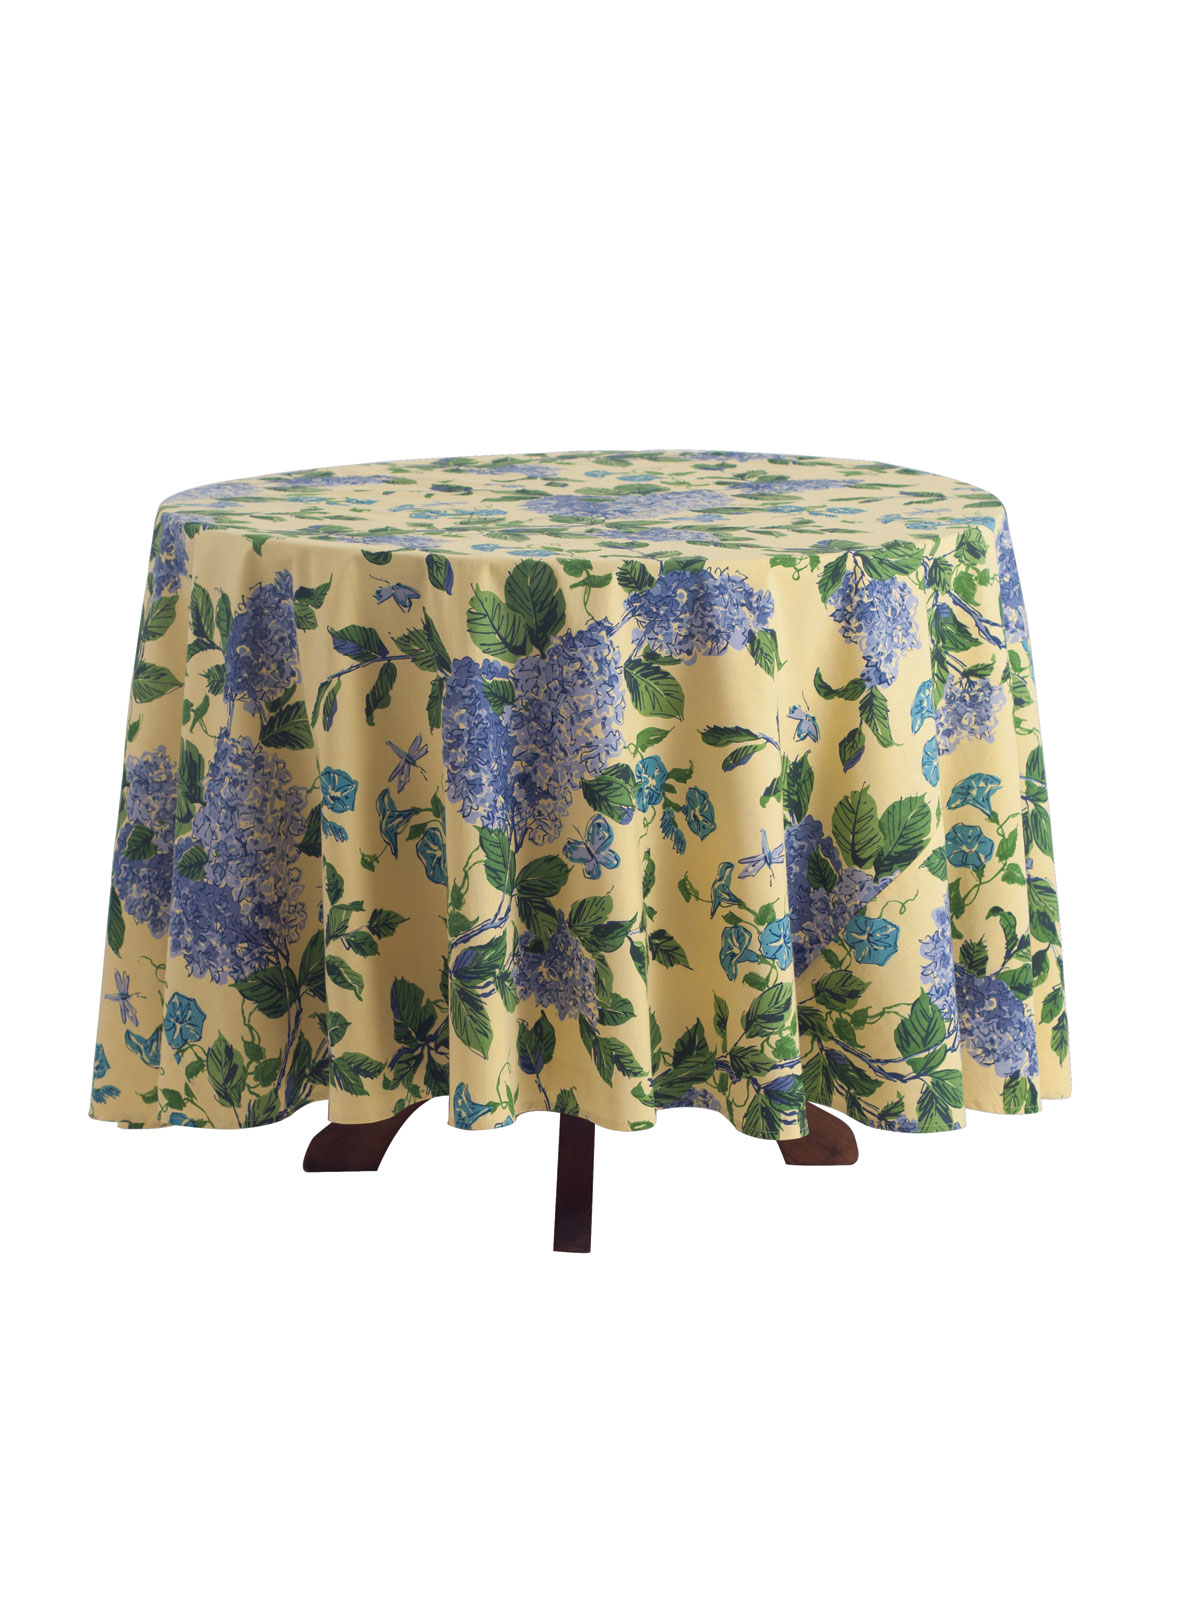 Harriet S Hydrangea Round Tablecloth Yellow Table